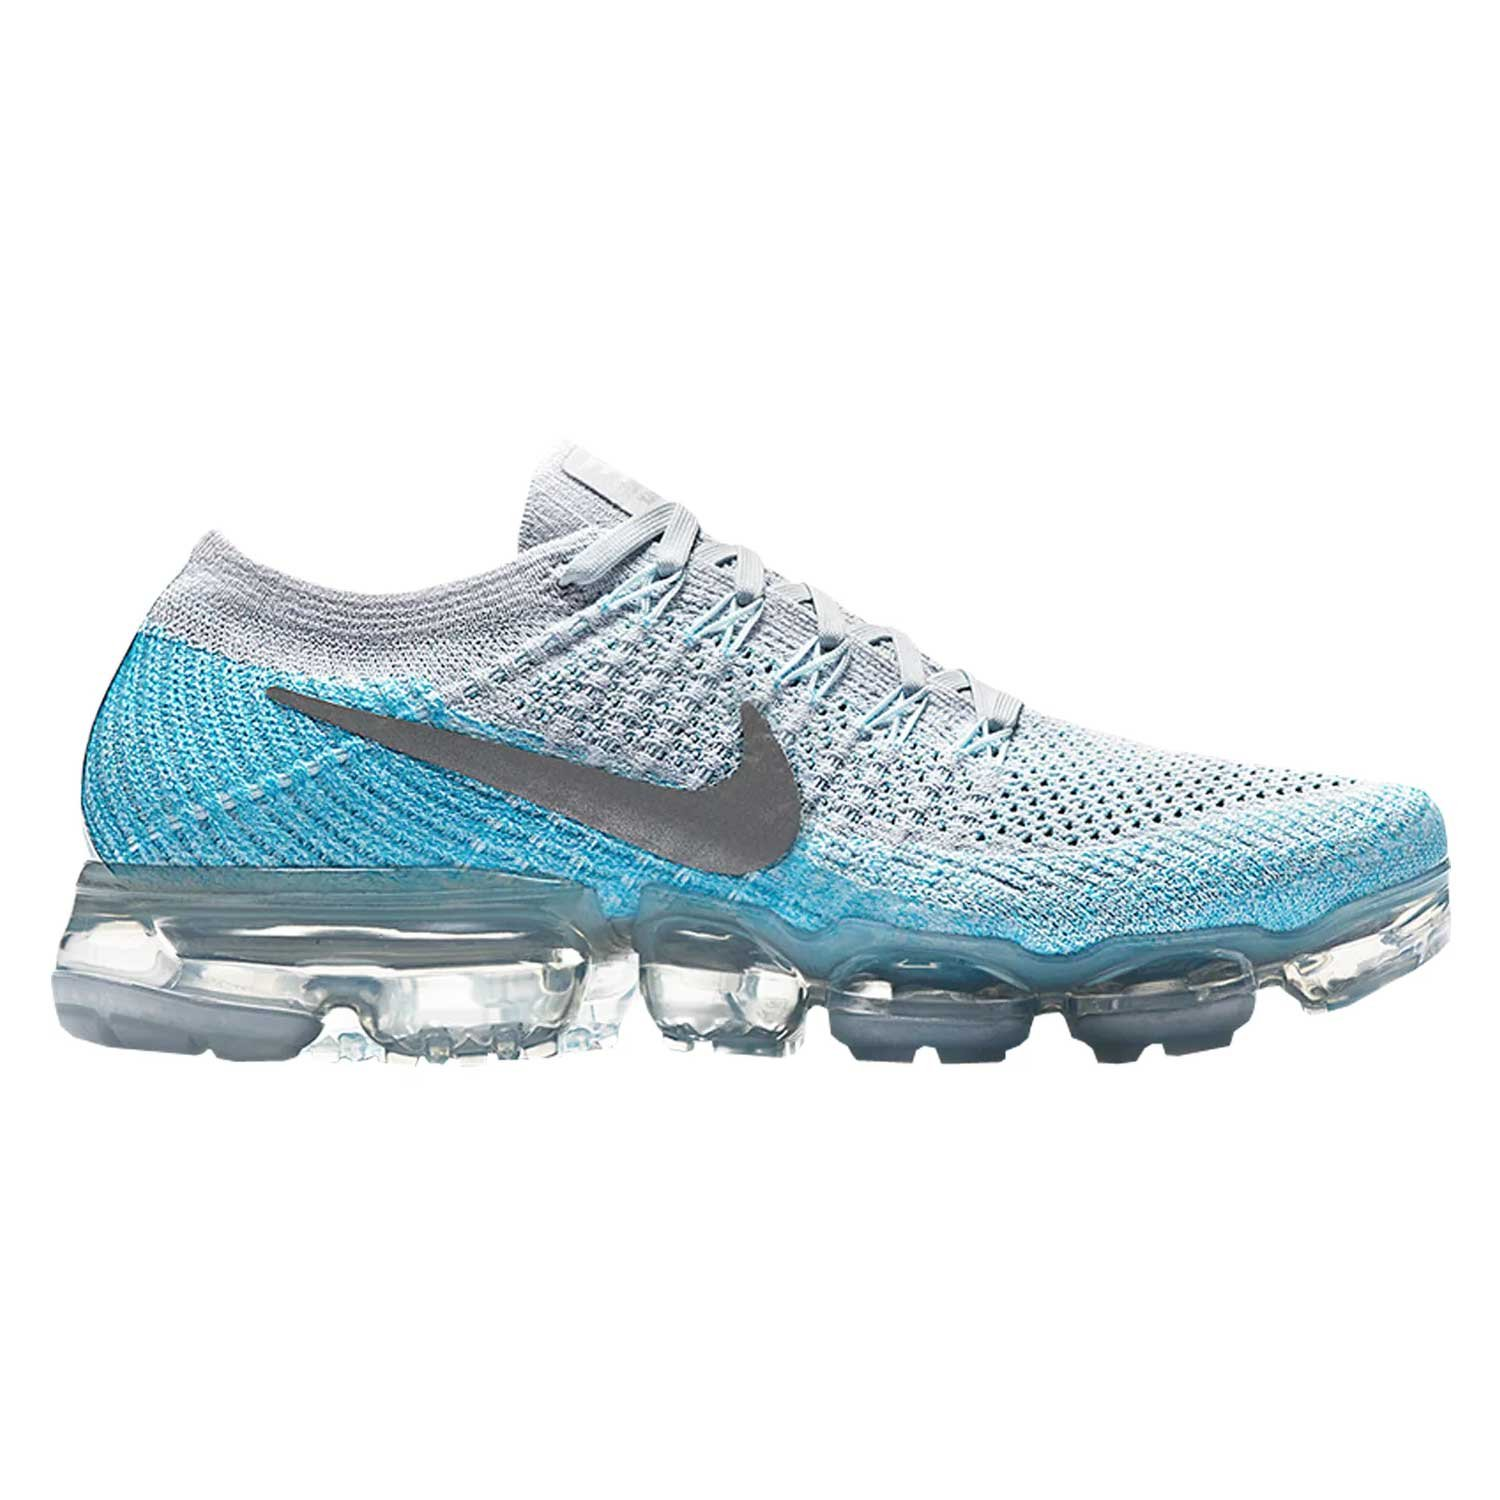 NIKE Women's Air Vapormax Flyknit Running Shoes B0774VQ5QT 7.5 B(M) US|Blue